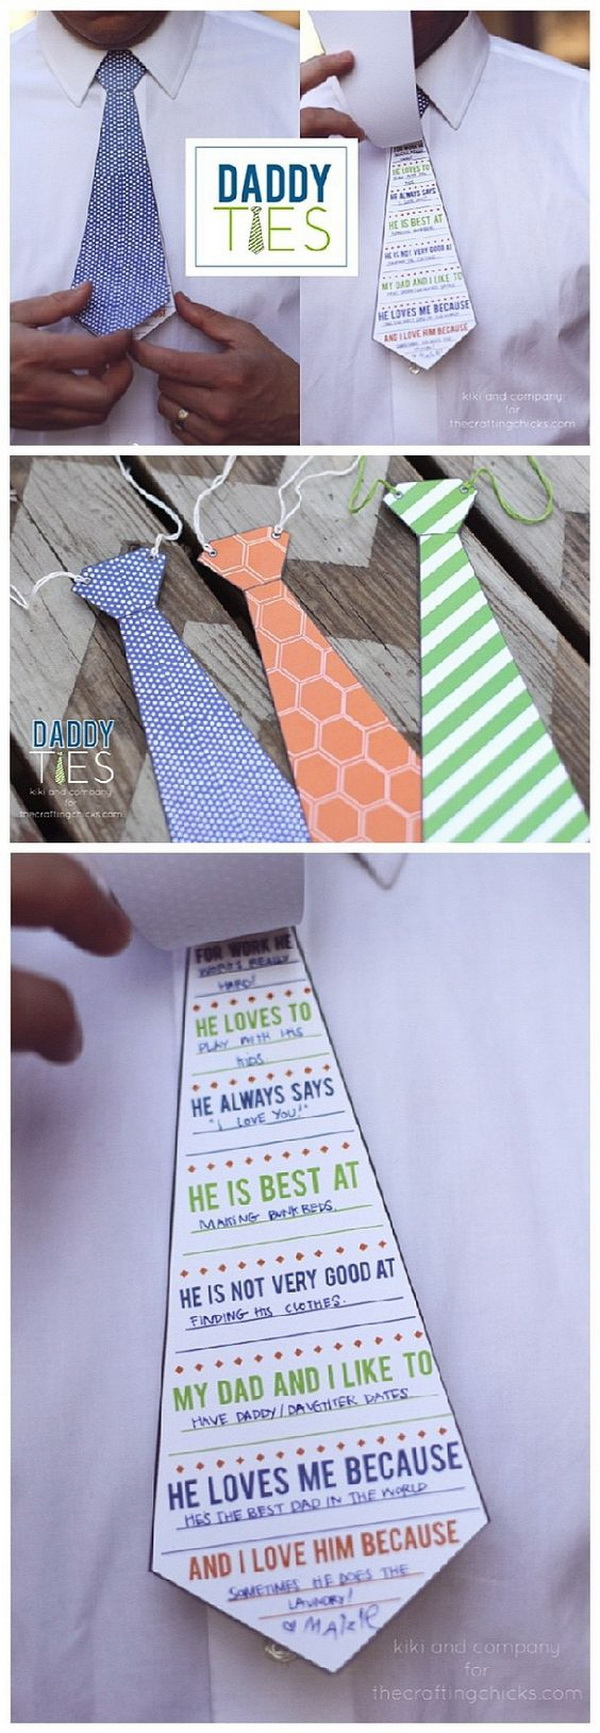 Father's Day Printable Card -Daddy Ties.